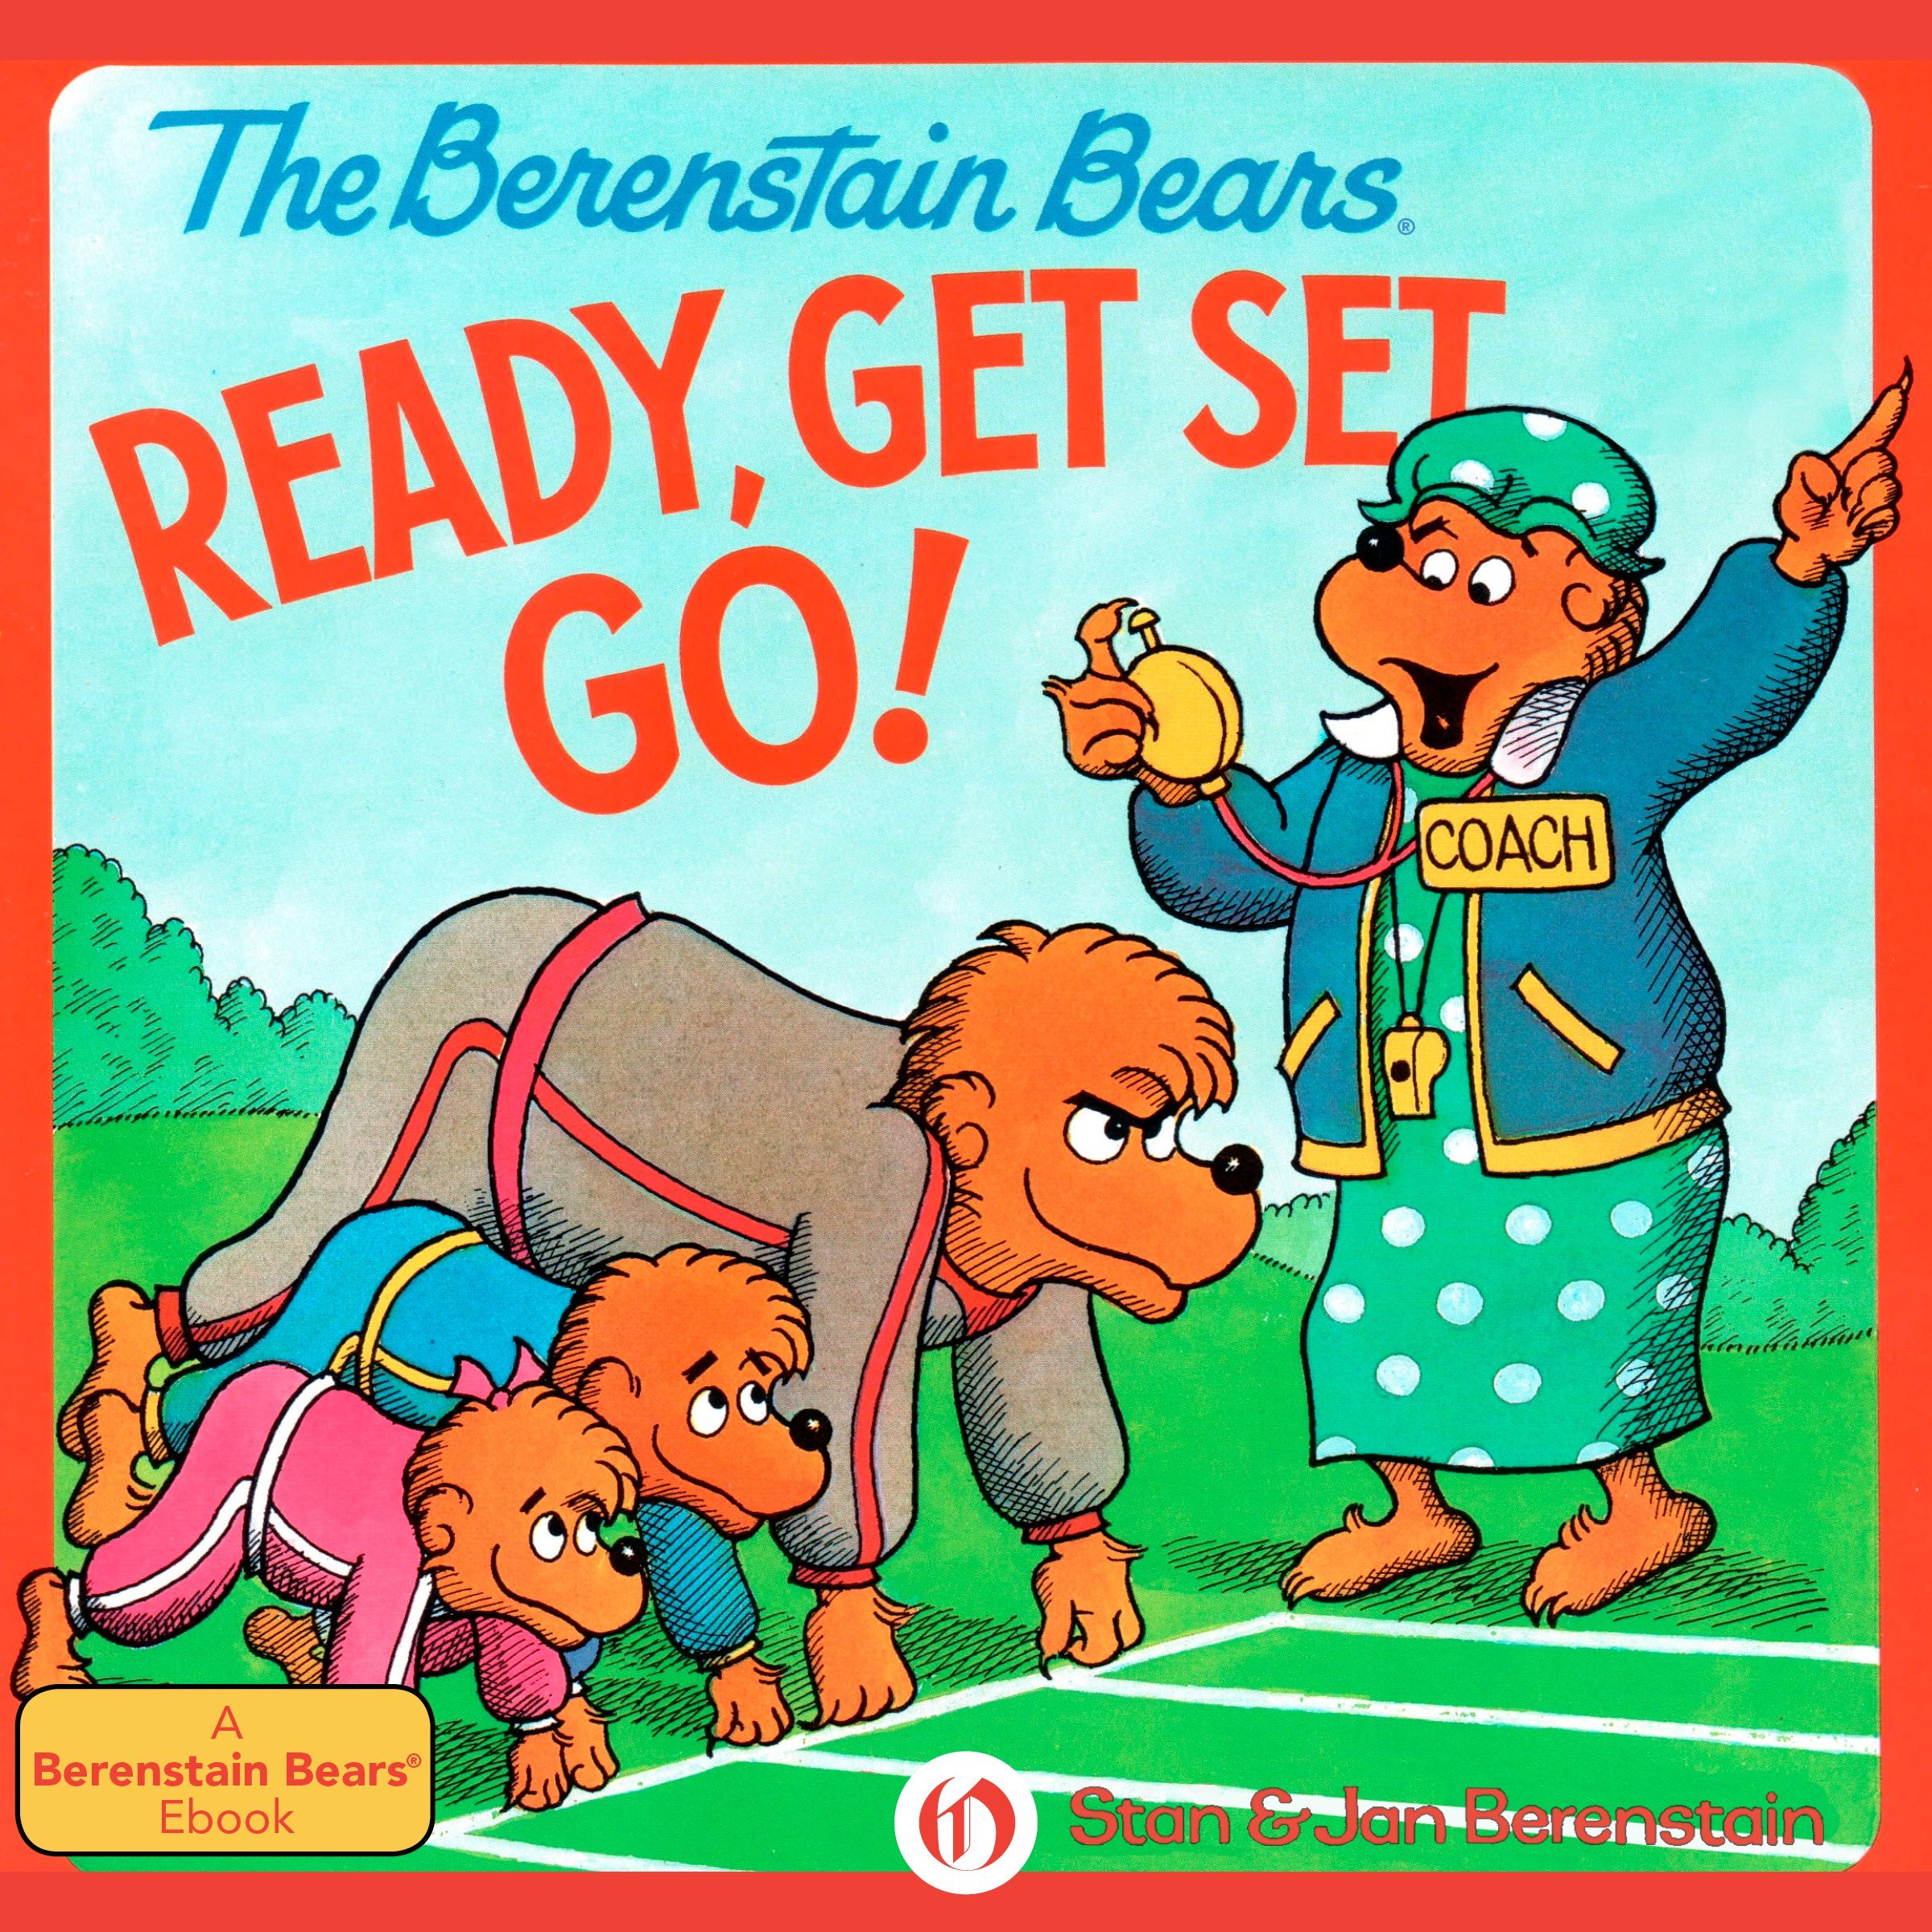 The Berenstain Bears Ready Get Set Go